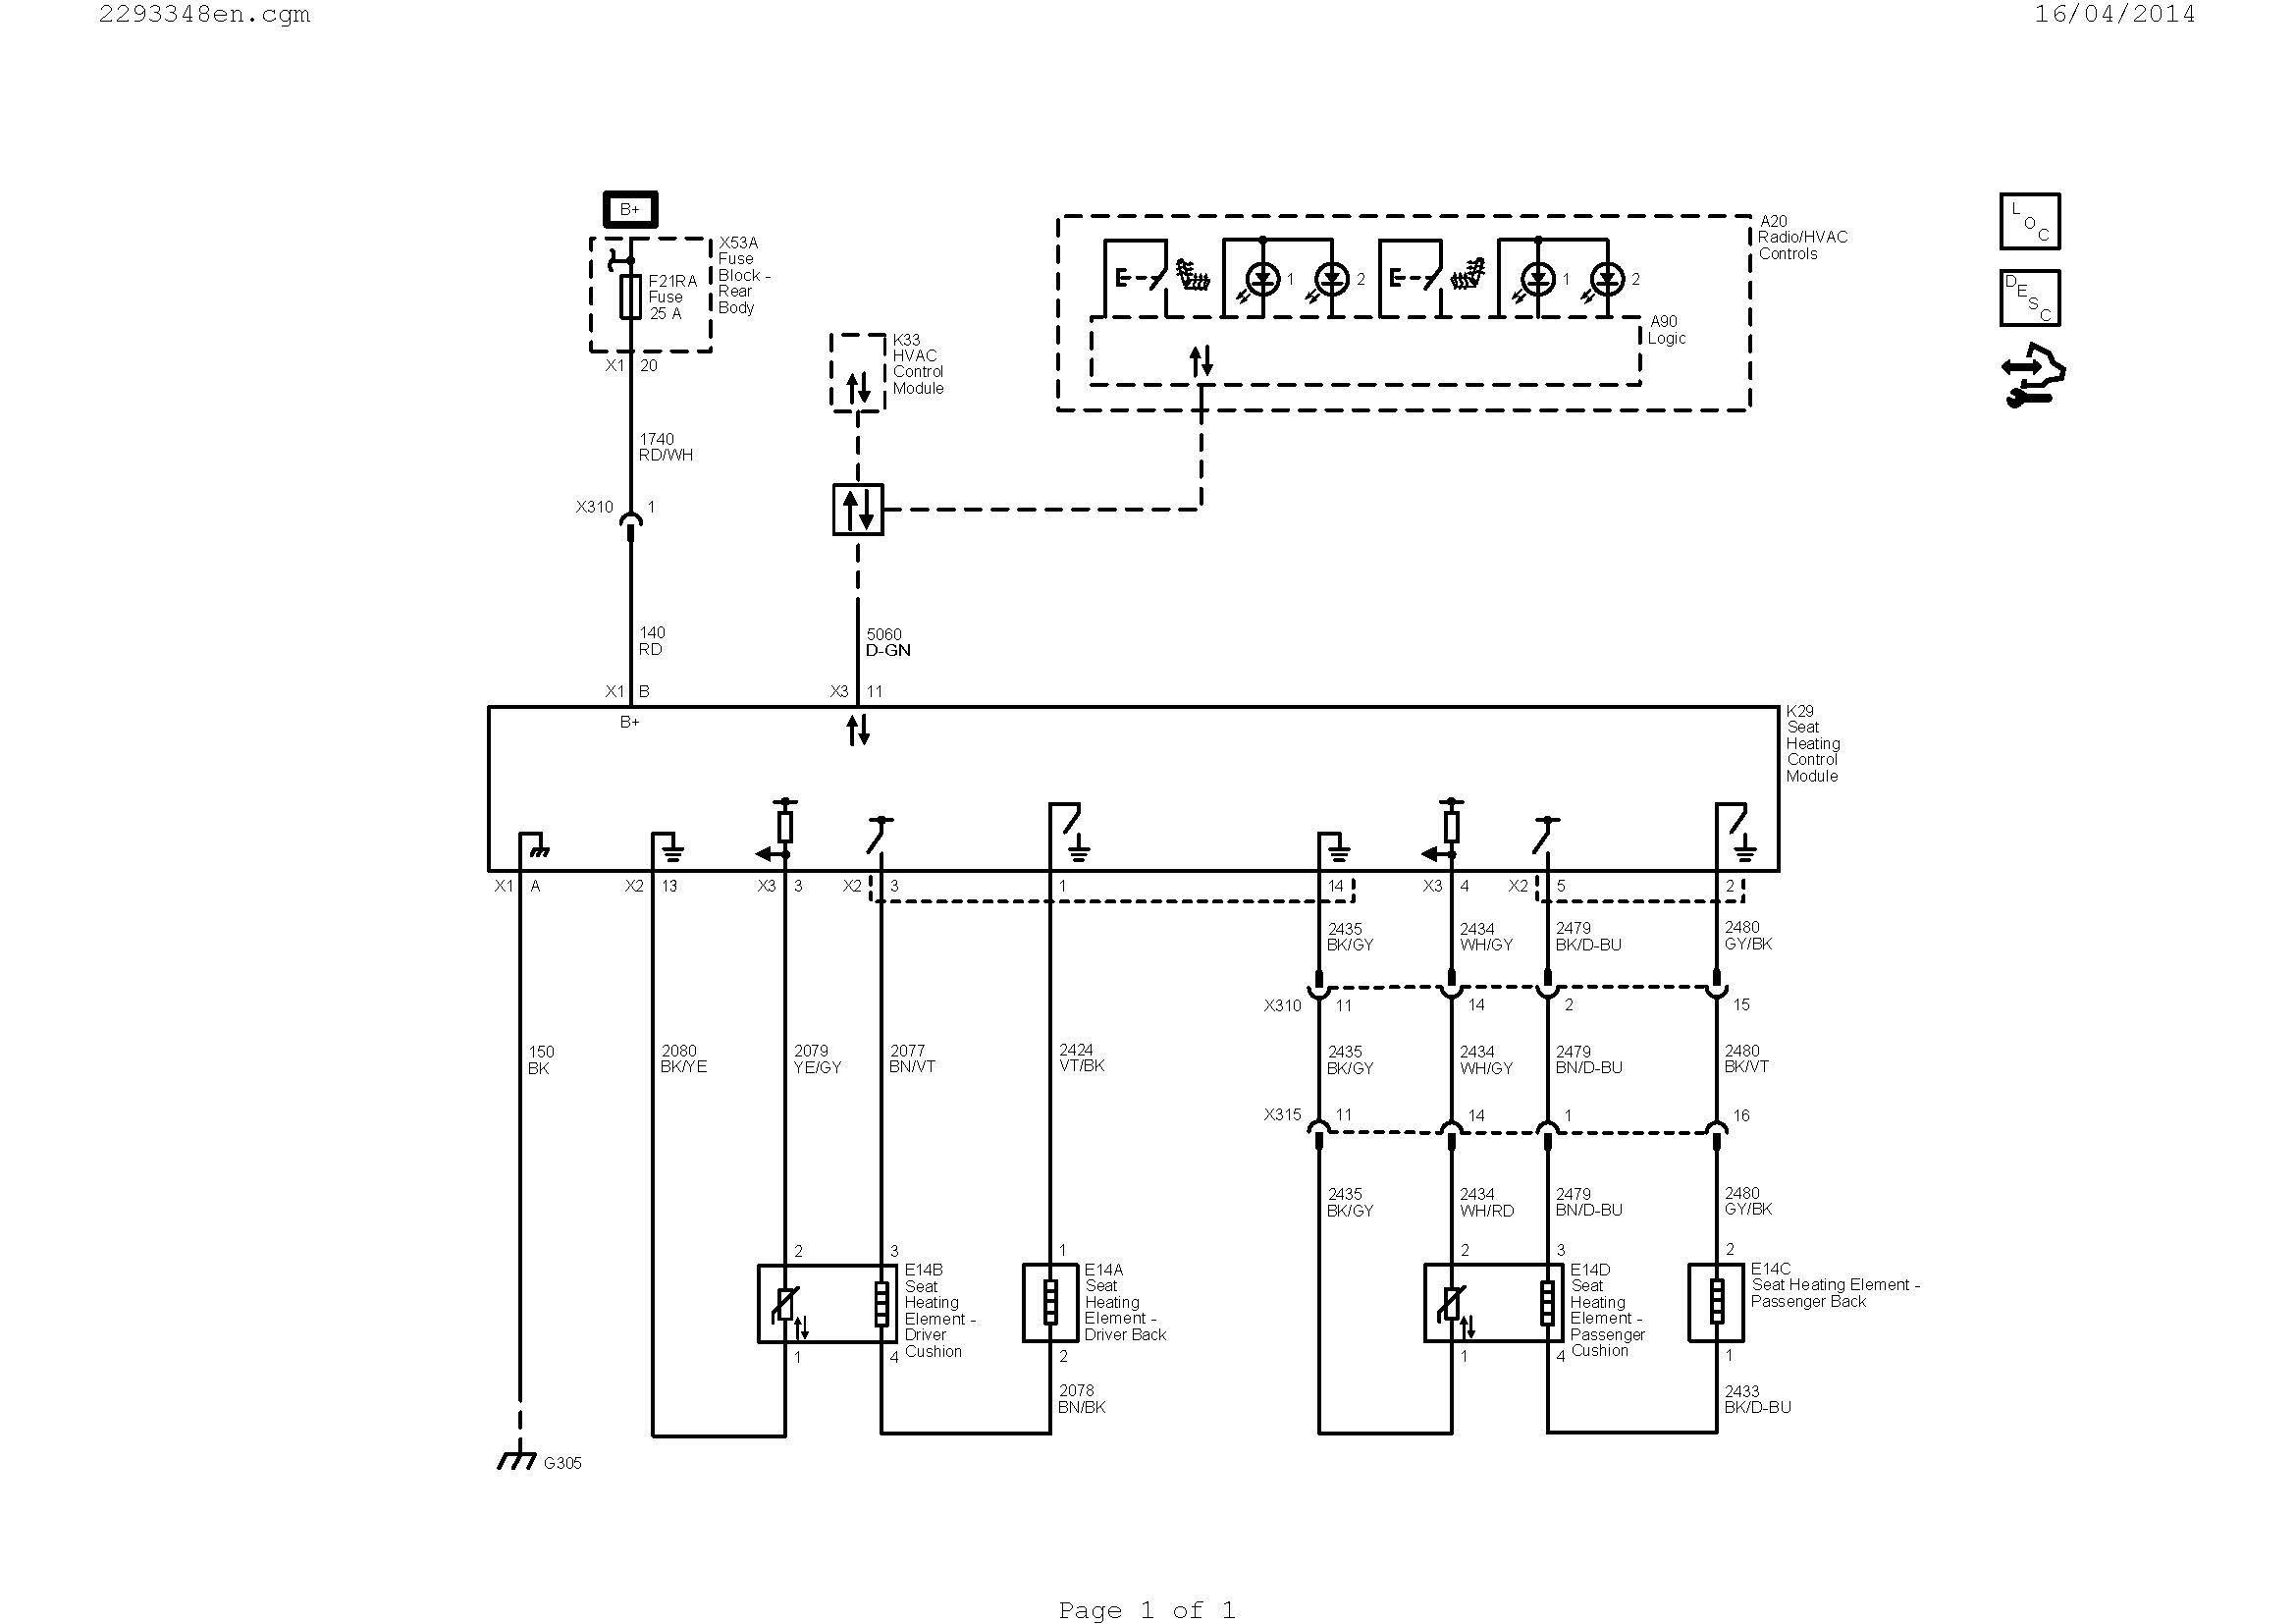 Parts Of A Car Body Diagram C030f9 Lighted F Switch Wiring Diagram Of Parts Of A Car Body Diagram